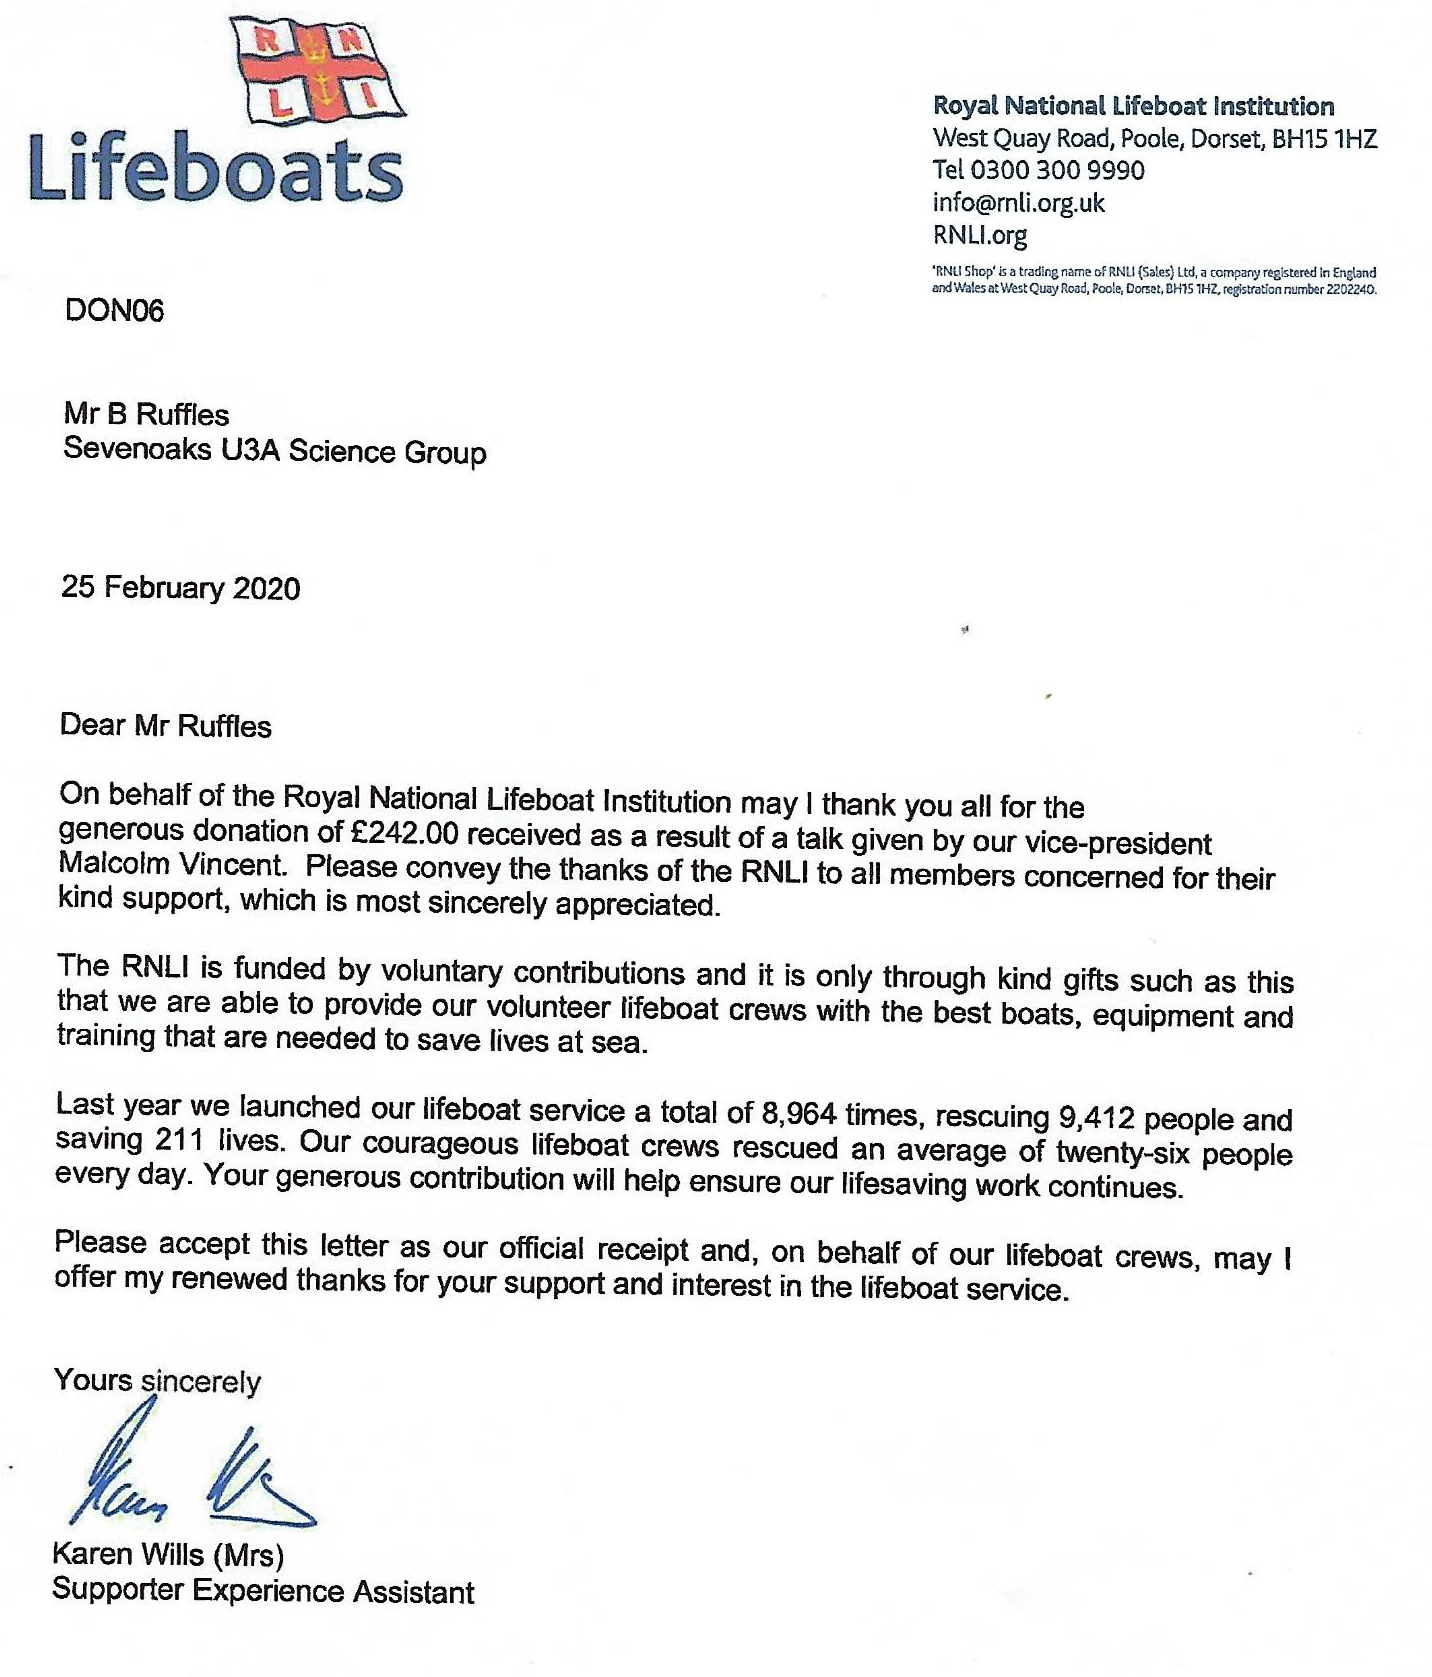 RNLI Thank You Letter